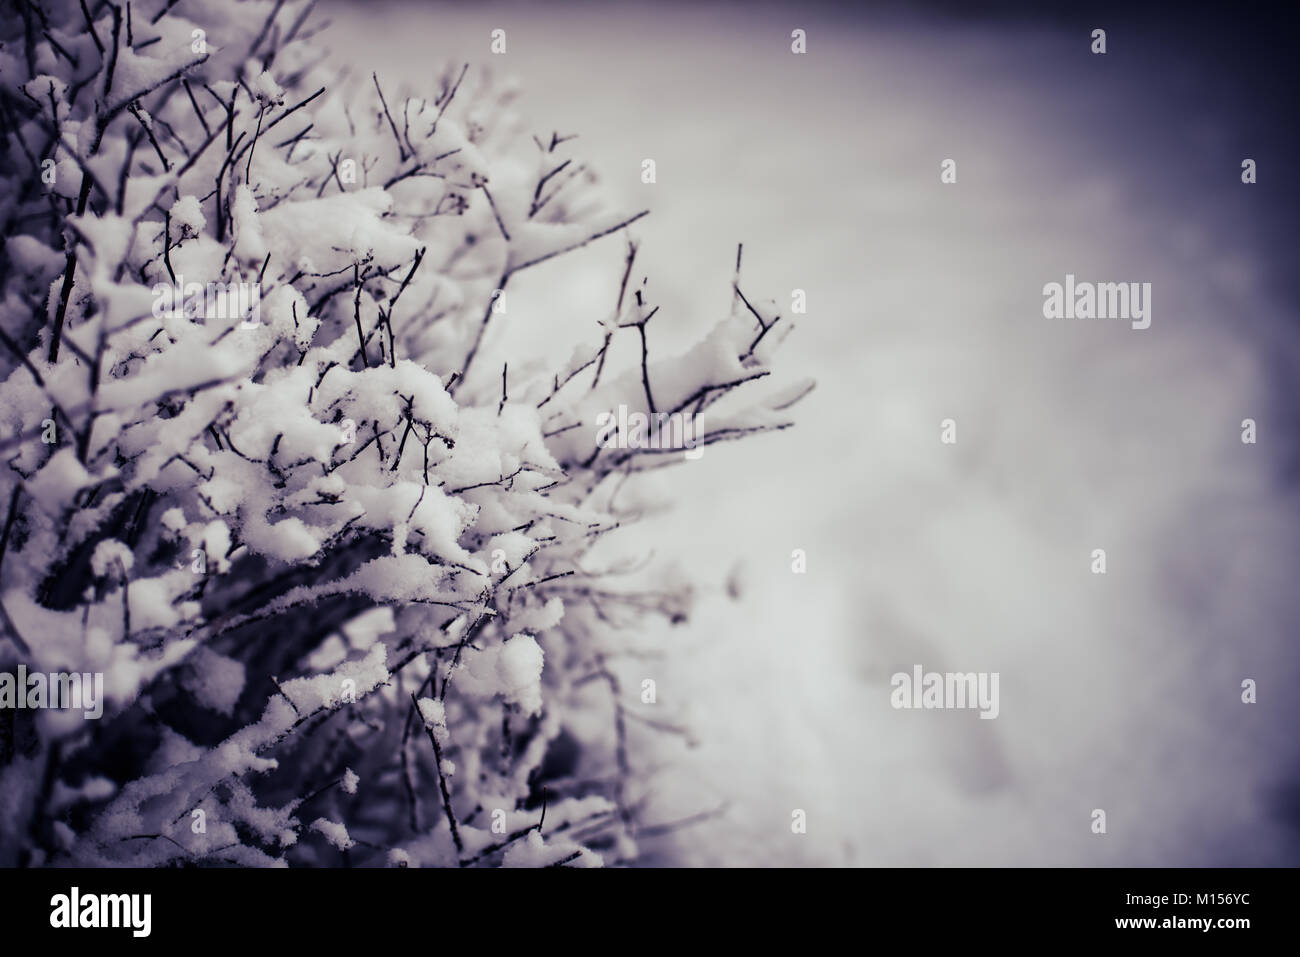 Fresh Falling Snow on Outdoor Bush detail in Forest with Dark Shadows framing image - Stock Image